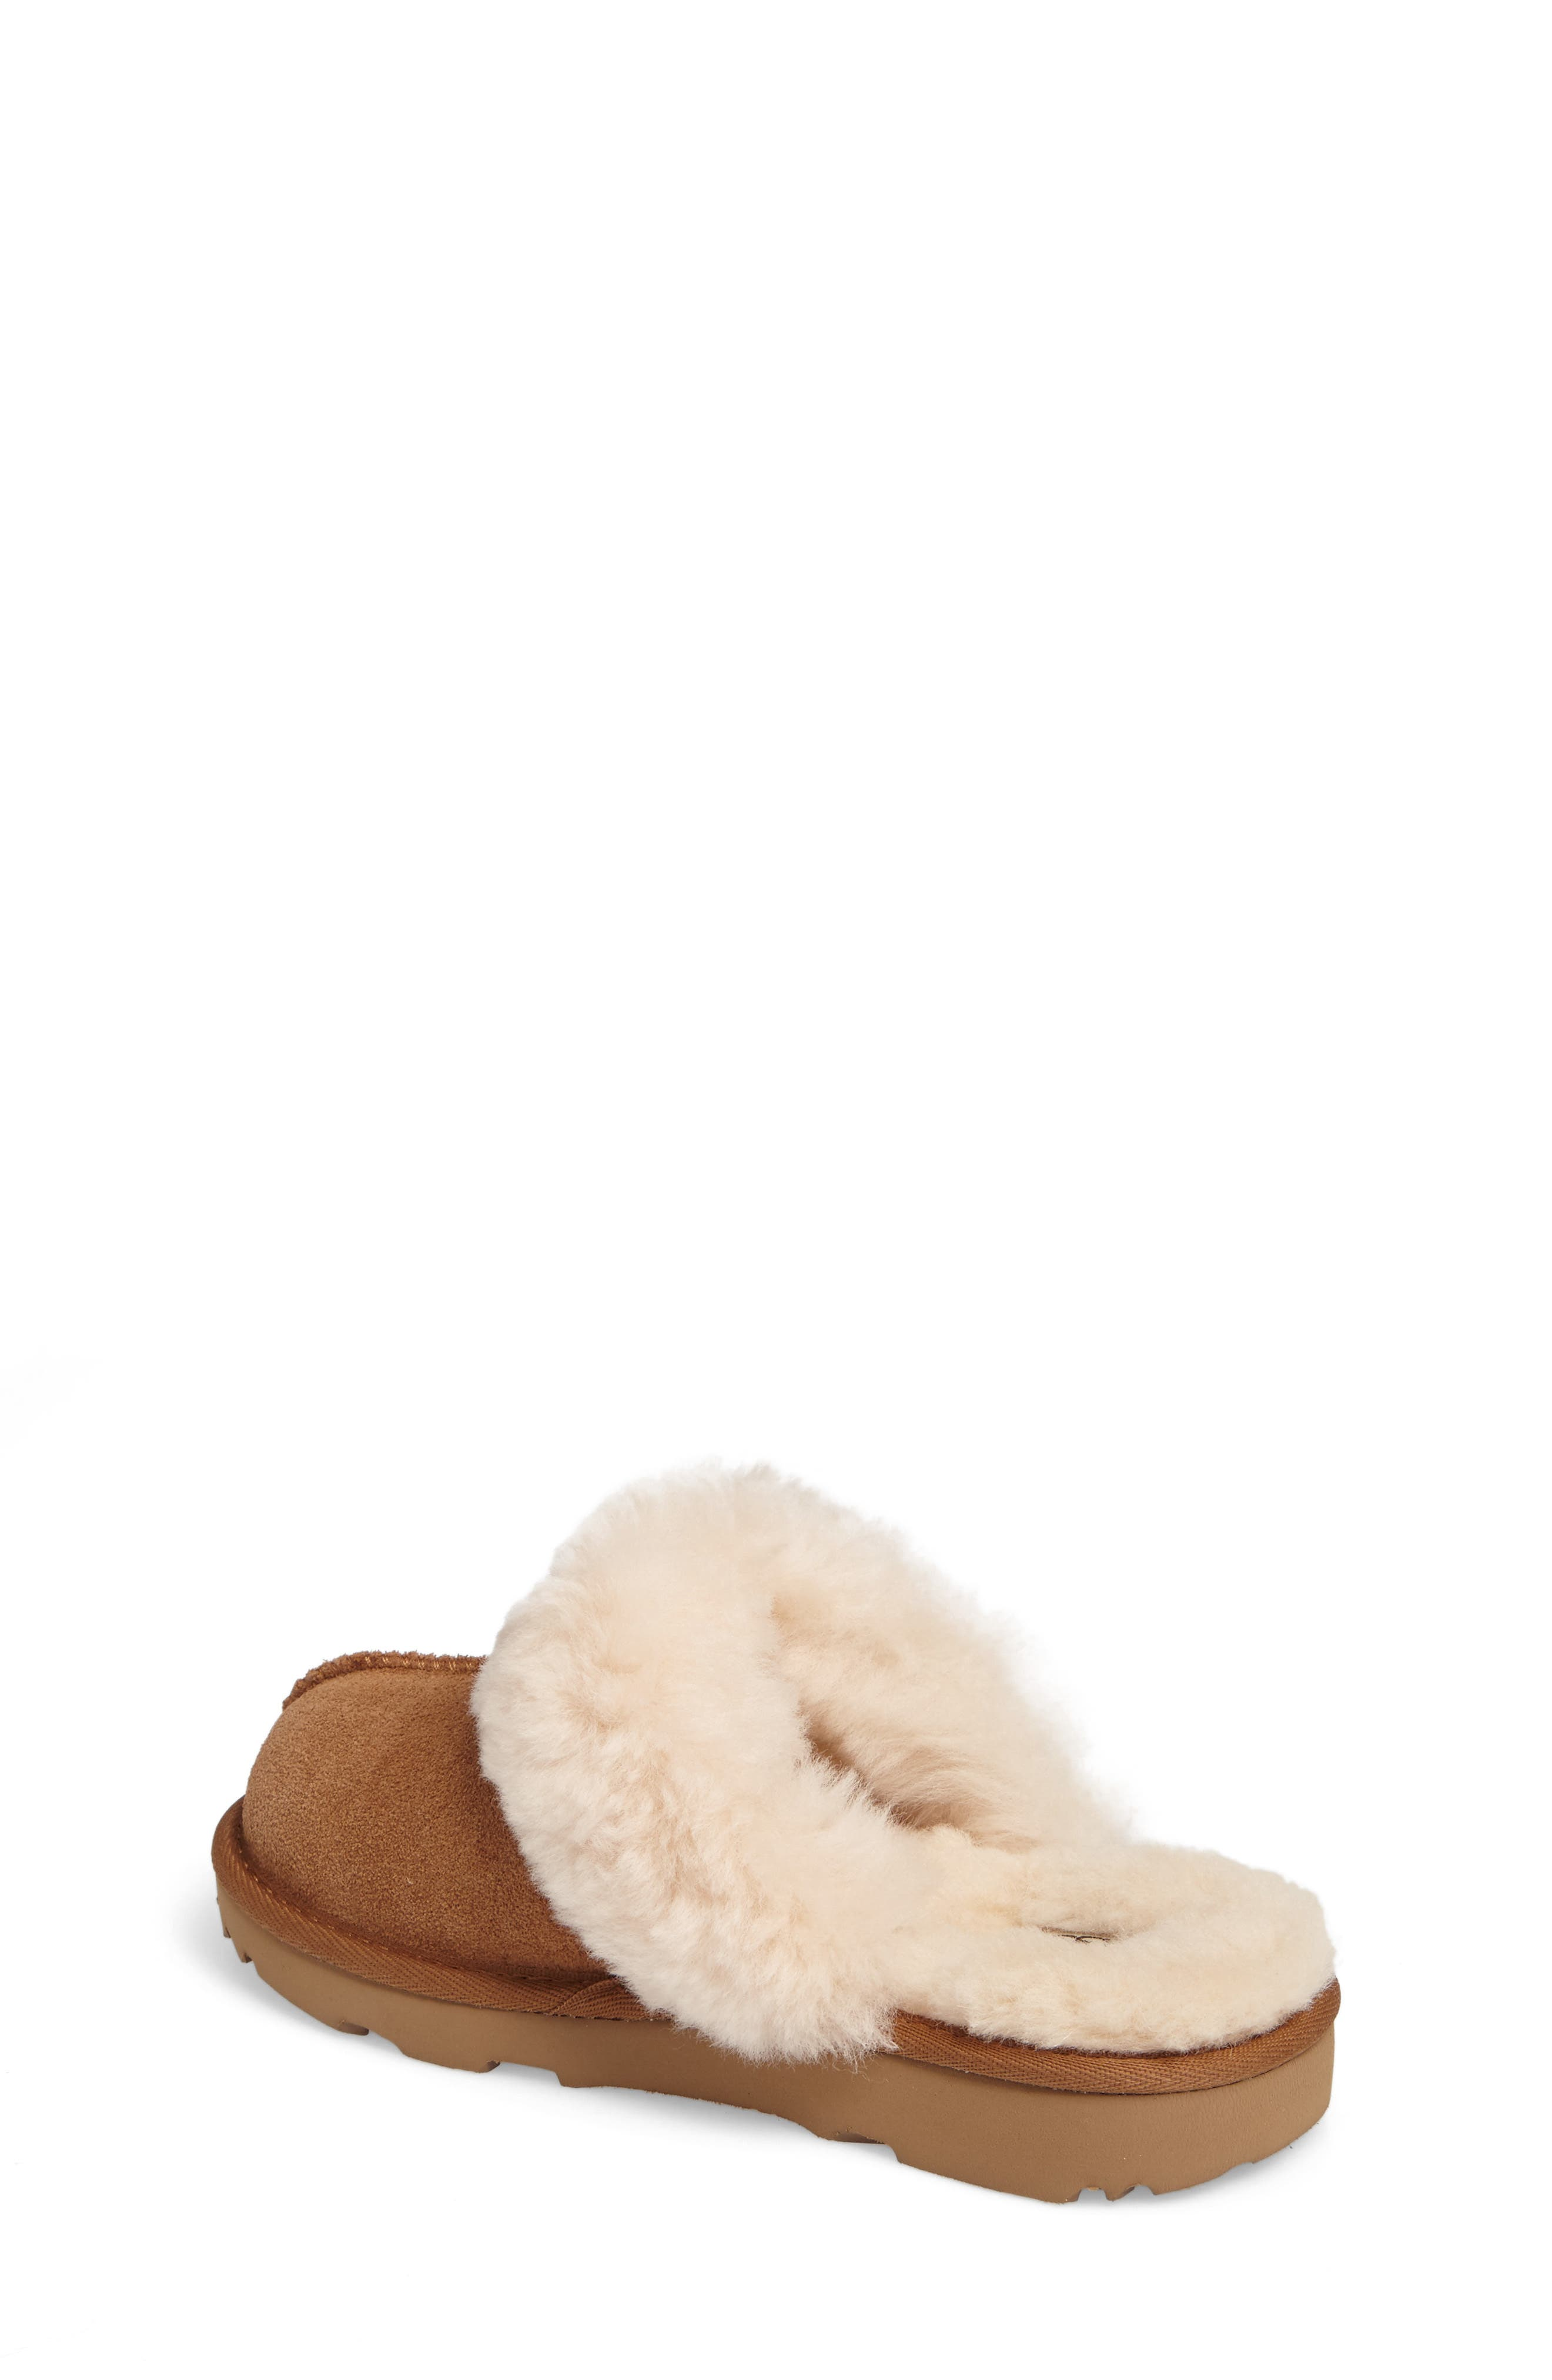 UGG<SUP>®</SUP>, Cozy II Scuff Slipper, Alternate thumbnail 2, color, CHESTNUT